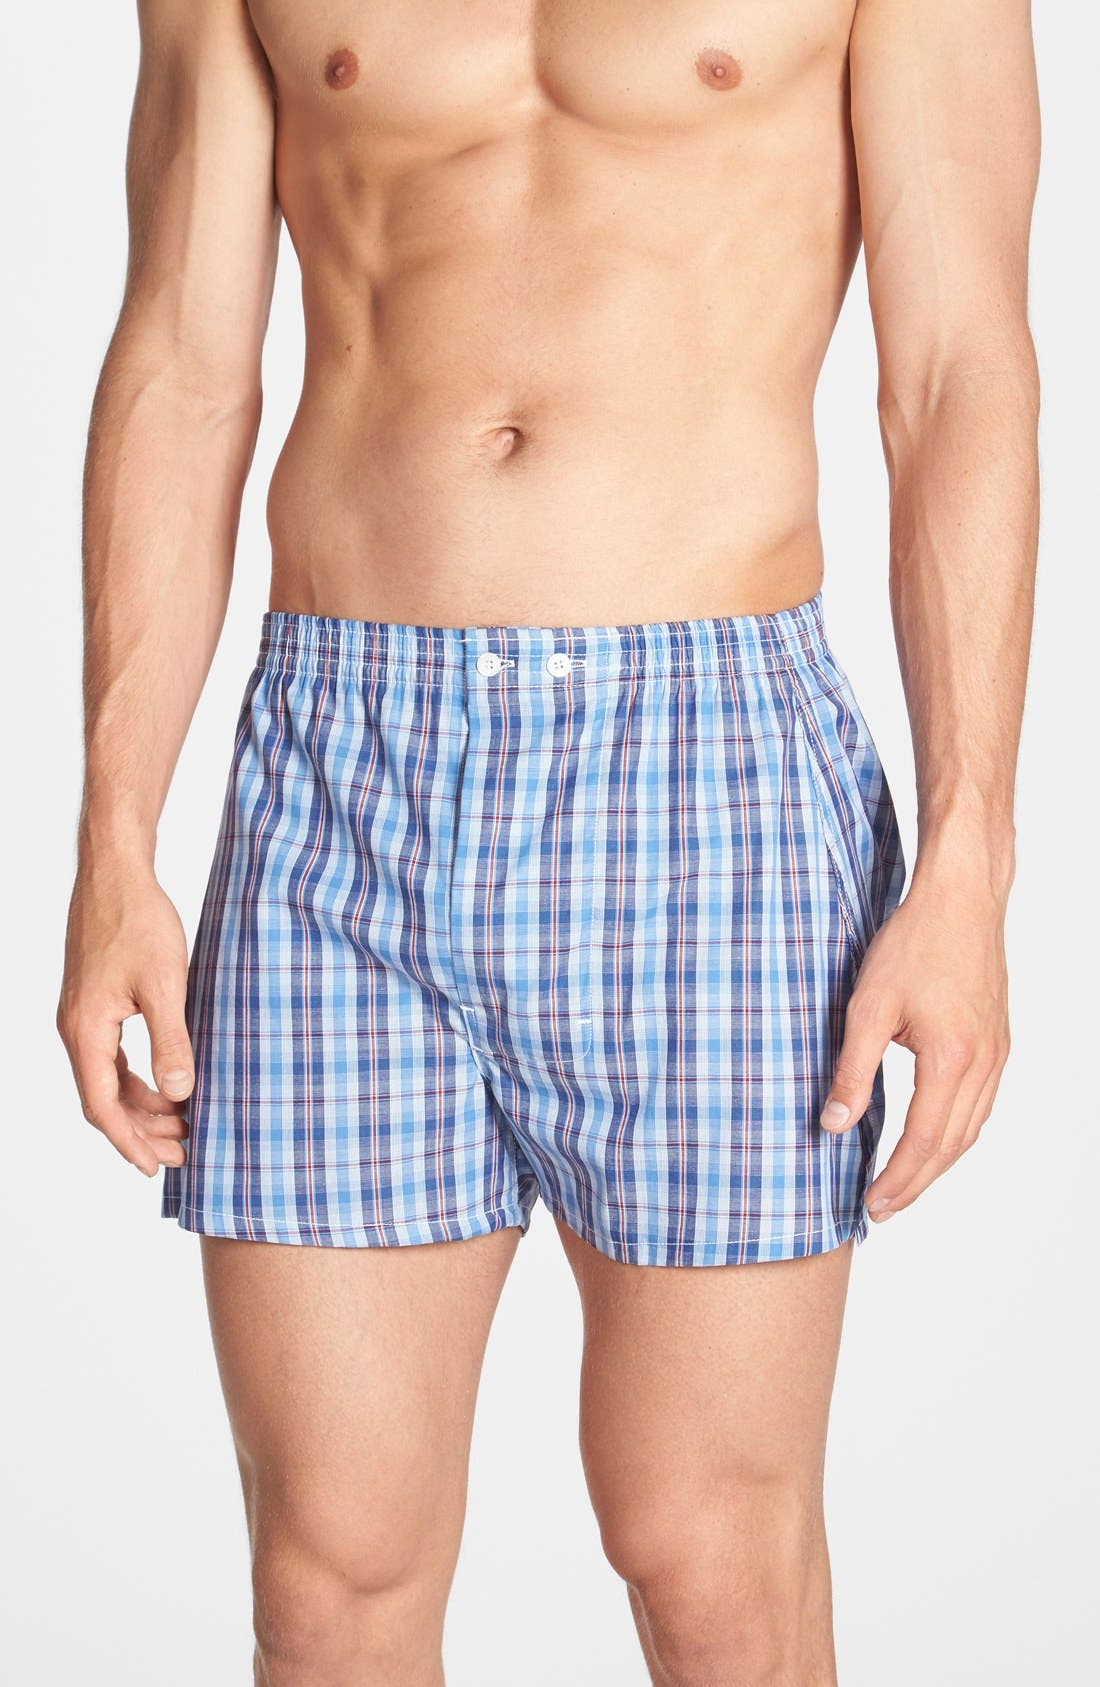 Alternate Image 1 Selected - Nordstrom Men's Shop Classic Fit Cotton Boxers (3 for $39.50)